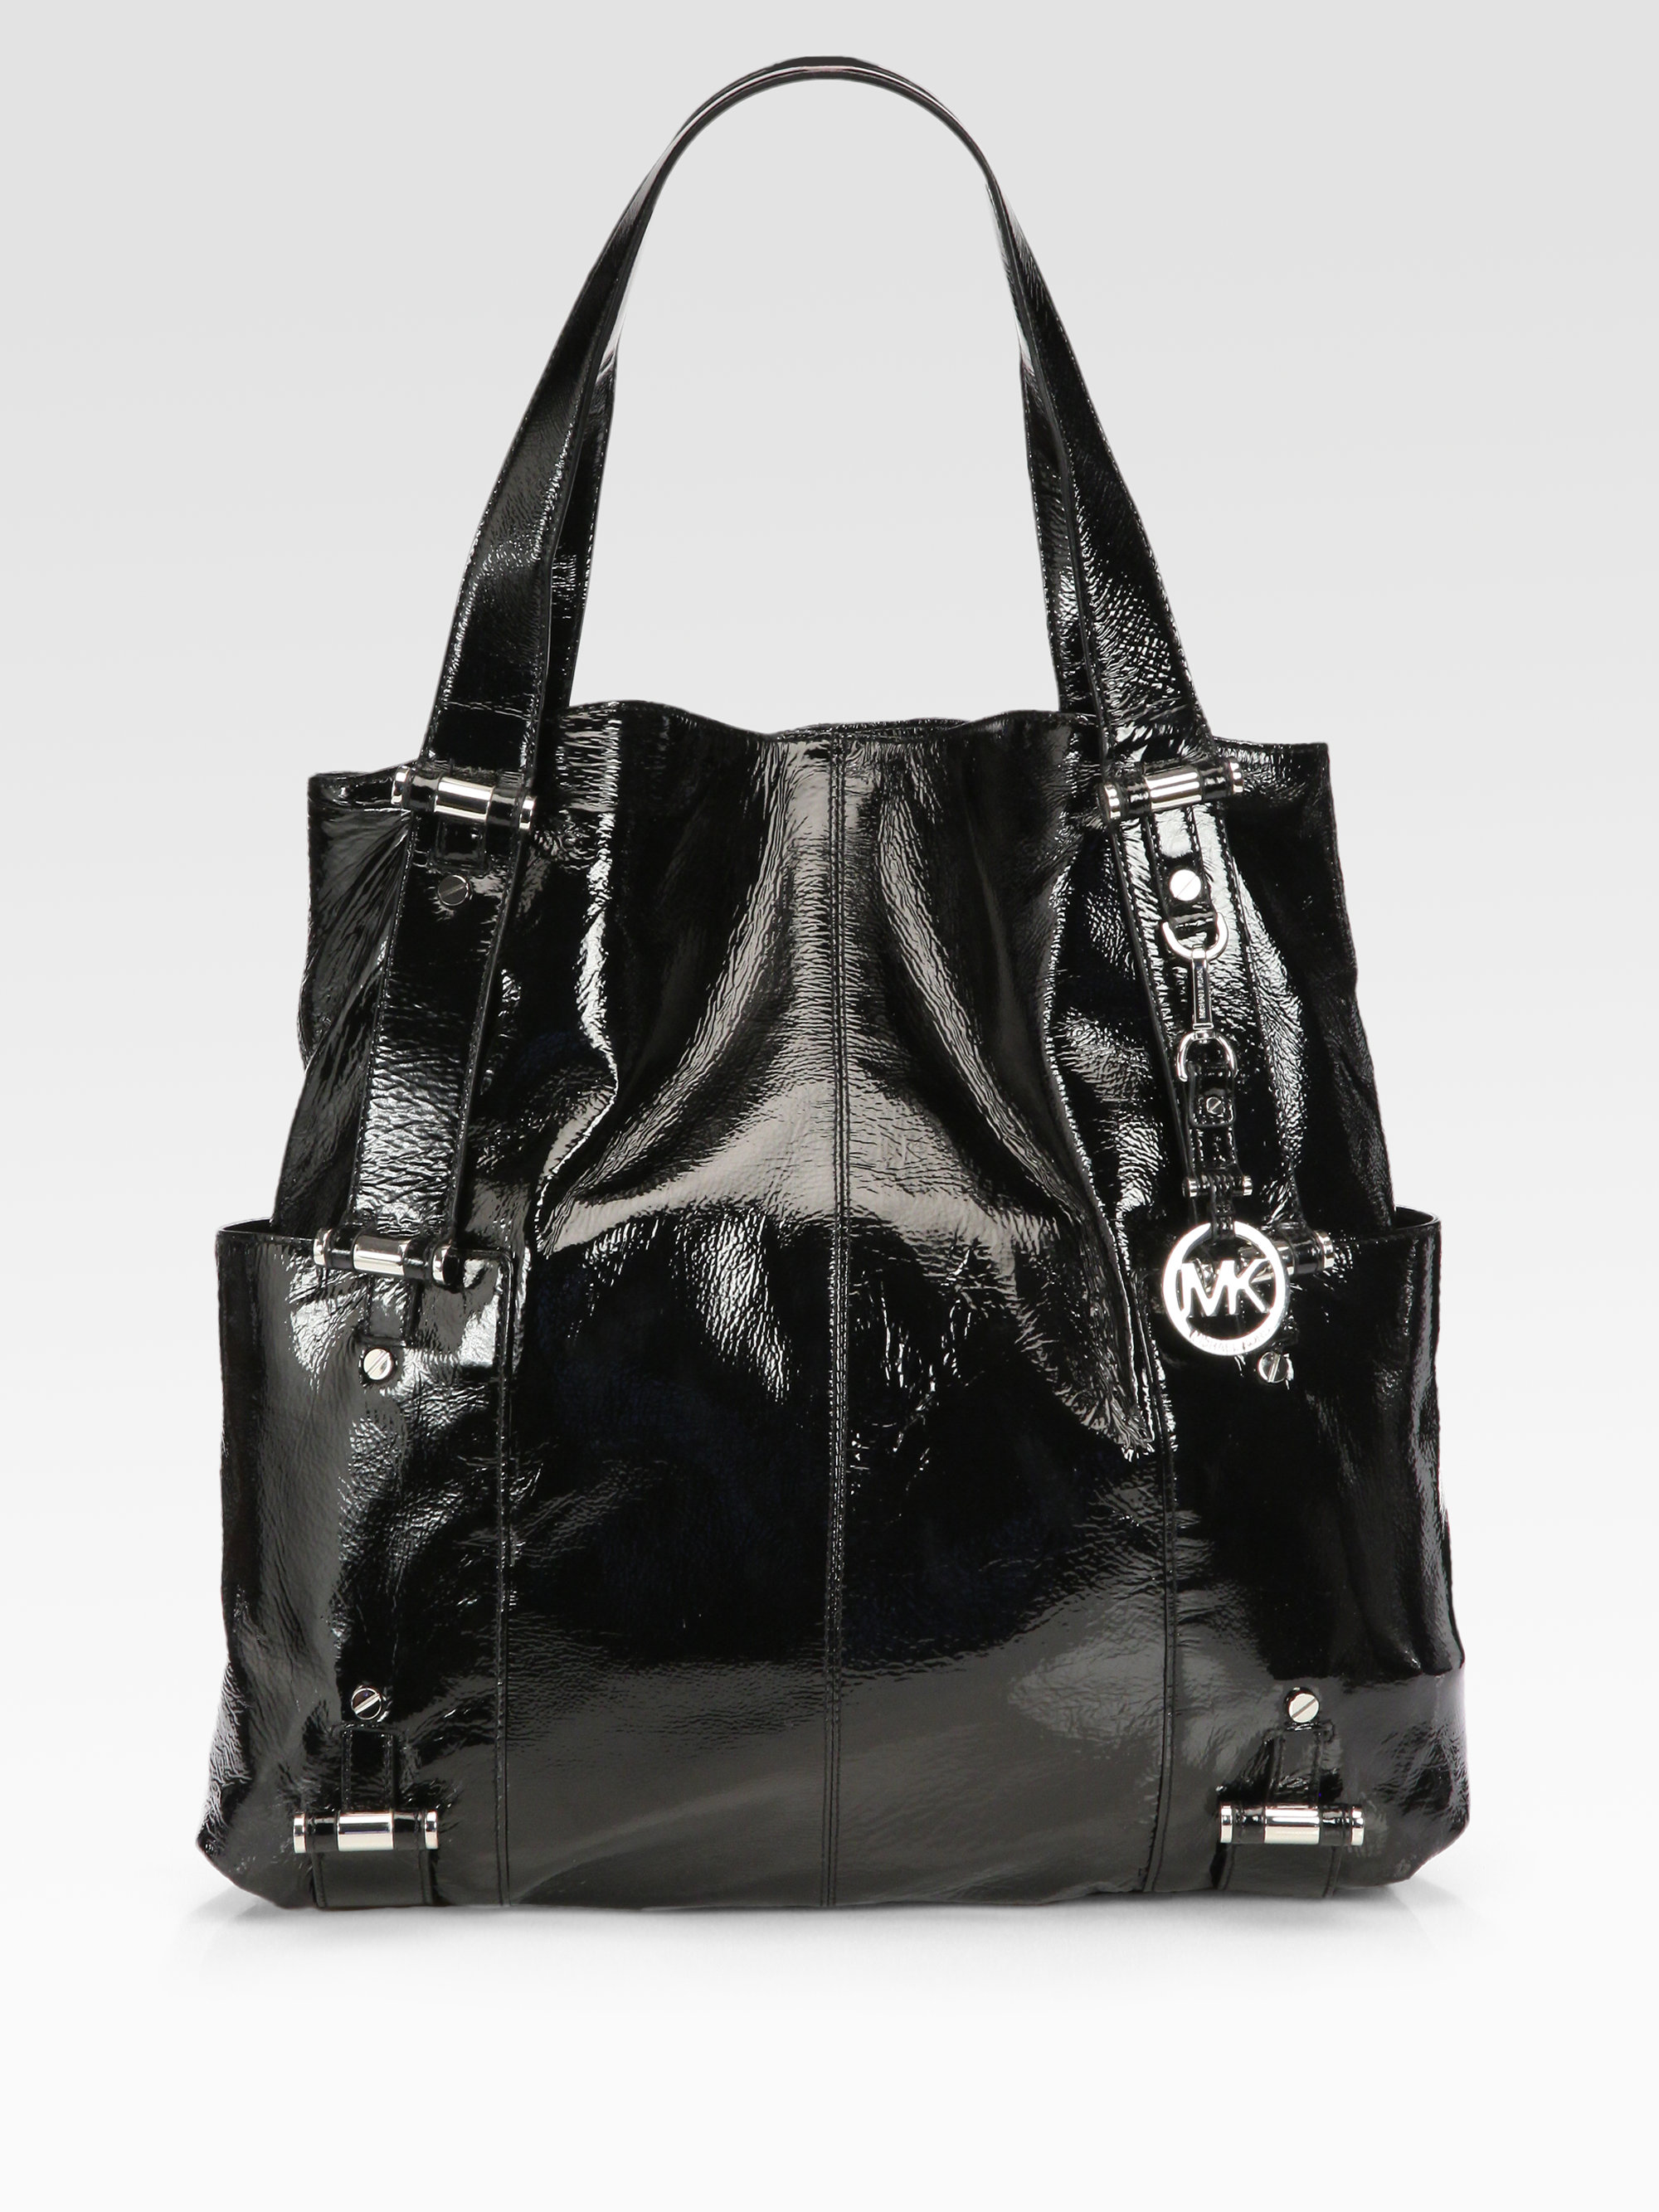 493d58bb7ff8 ... official lyst michael michael kors gibson patent leather large tote bag  in e2ecd 5a517